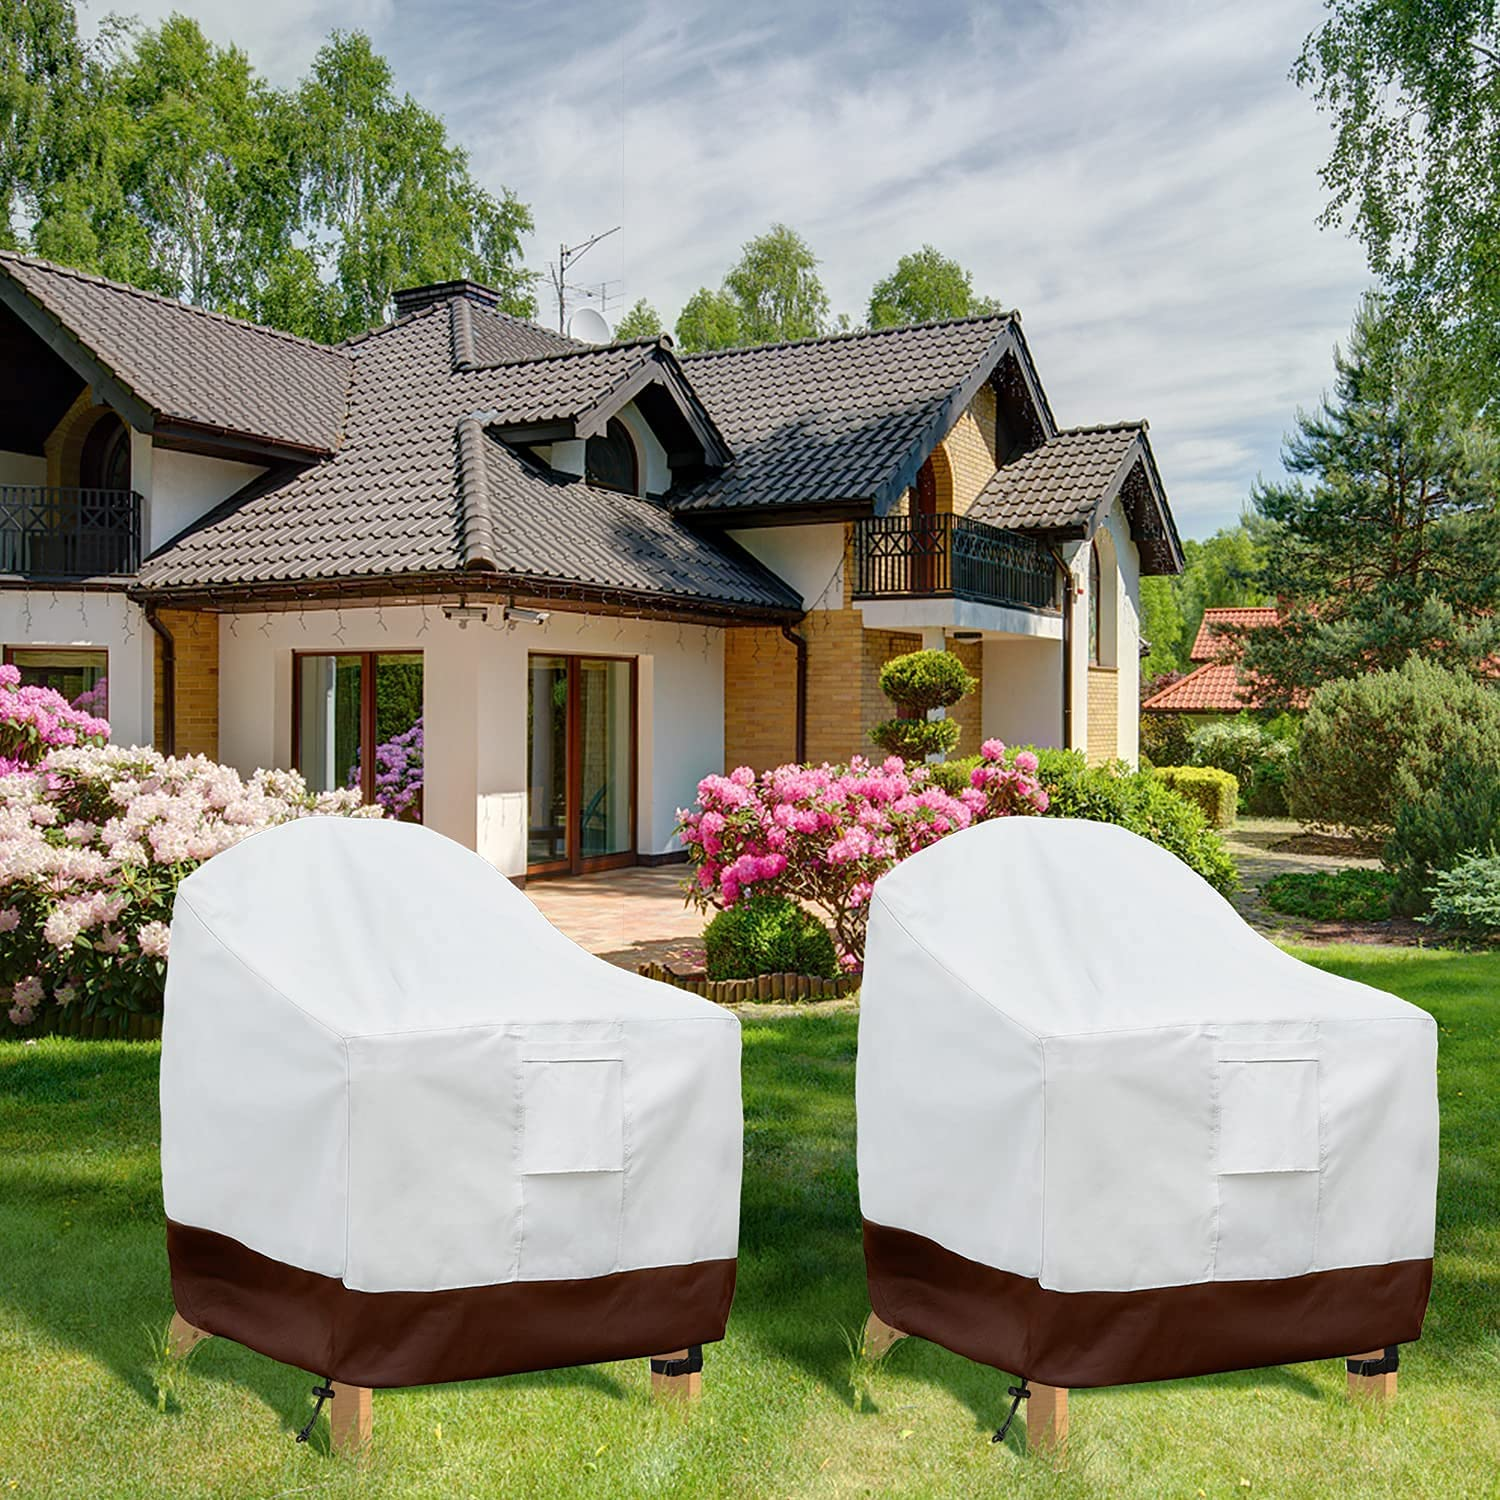 HOTBEST Patio Chair Cover Adirondack Outdoor Water New product San Antonio Mall Covers